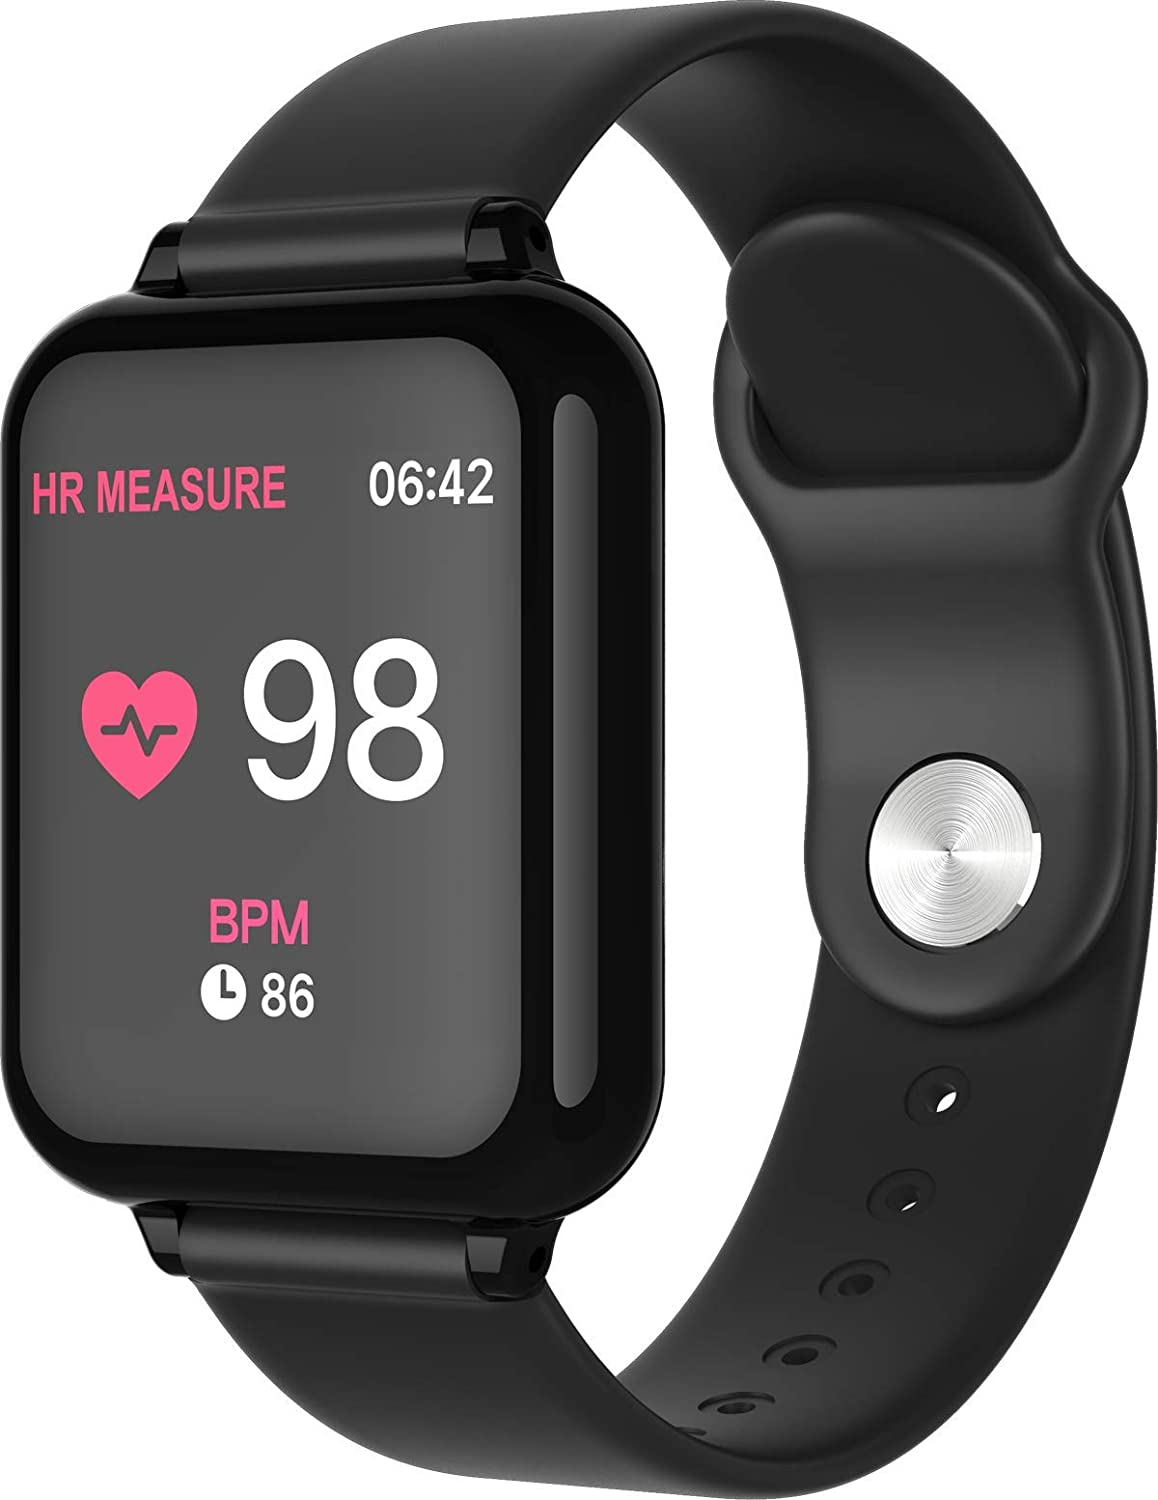 Fitness Tracker Heart Rate Monitor Step Counter Smart Watch for Men Waterproof Activity Tracker with Sleep Monitor Smart Wrist Band for Android iOS